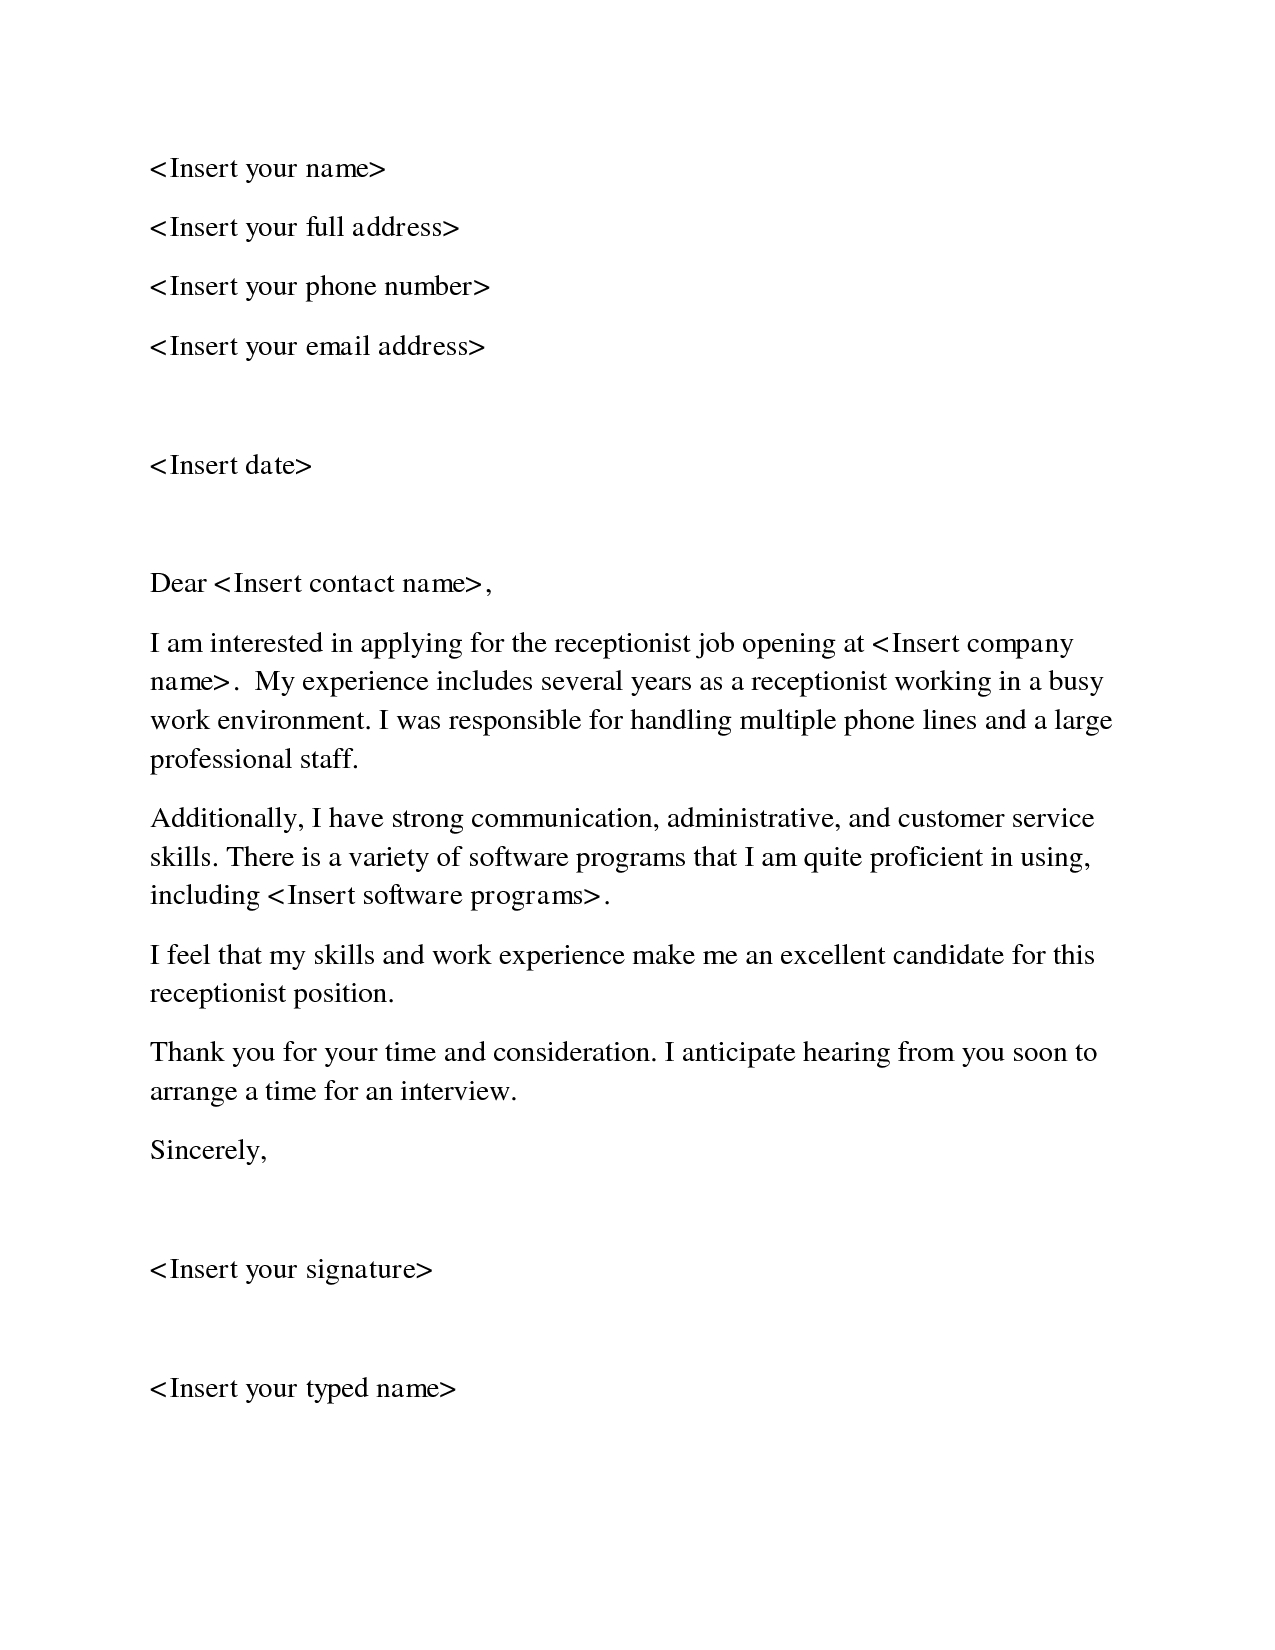 School Secretary Cover Letter Template - Cover Letter Help Receptionist Resume top Essay Writingcover Letter